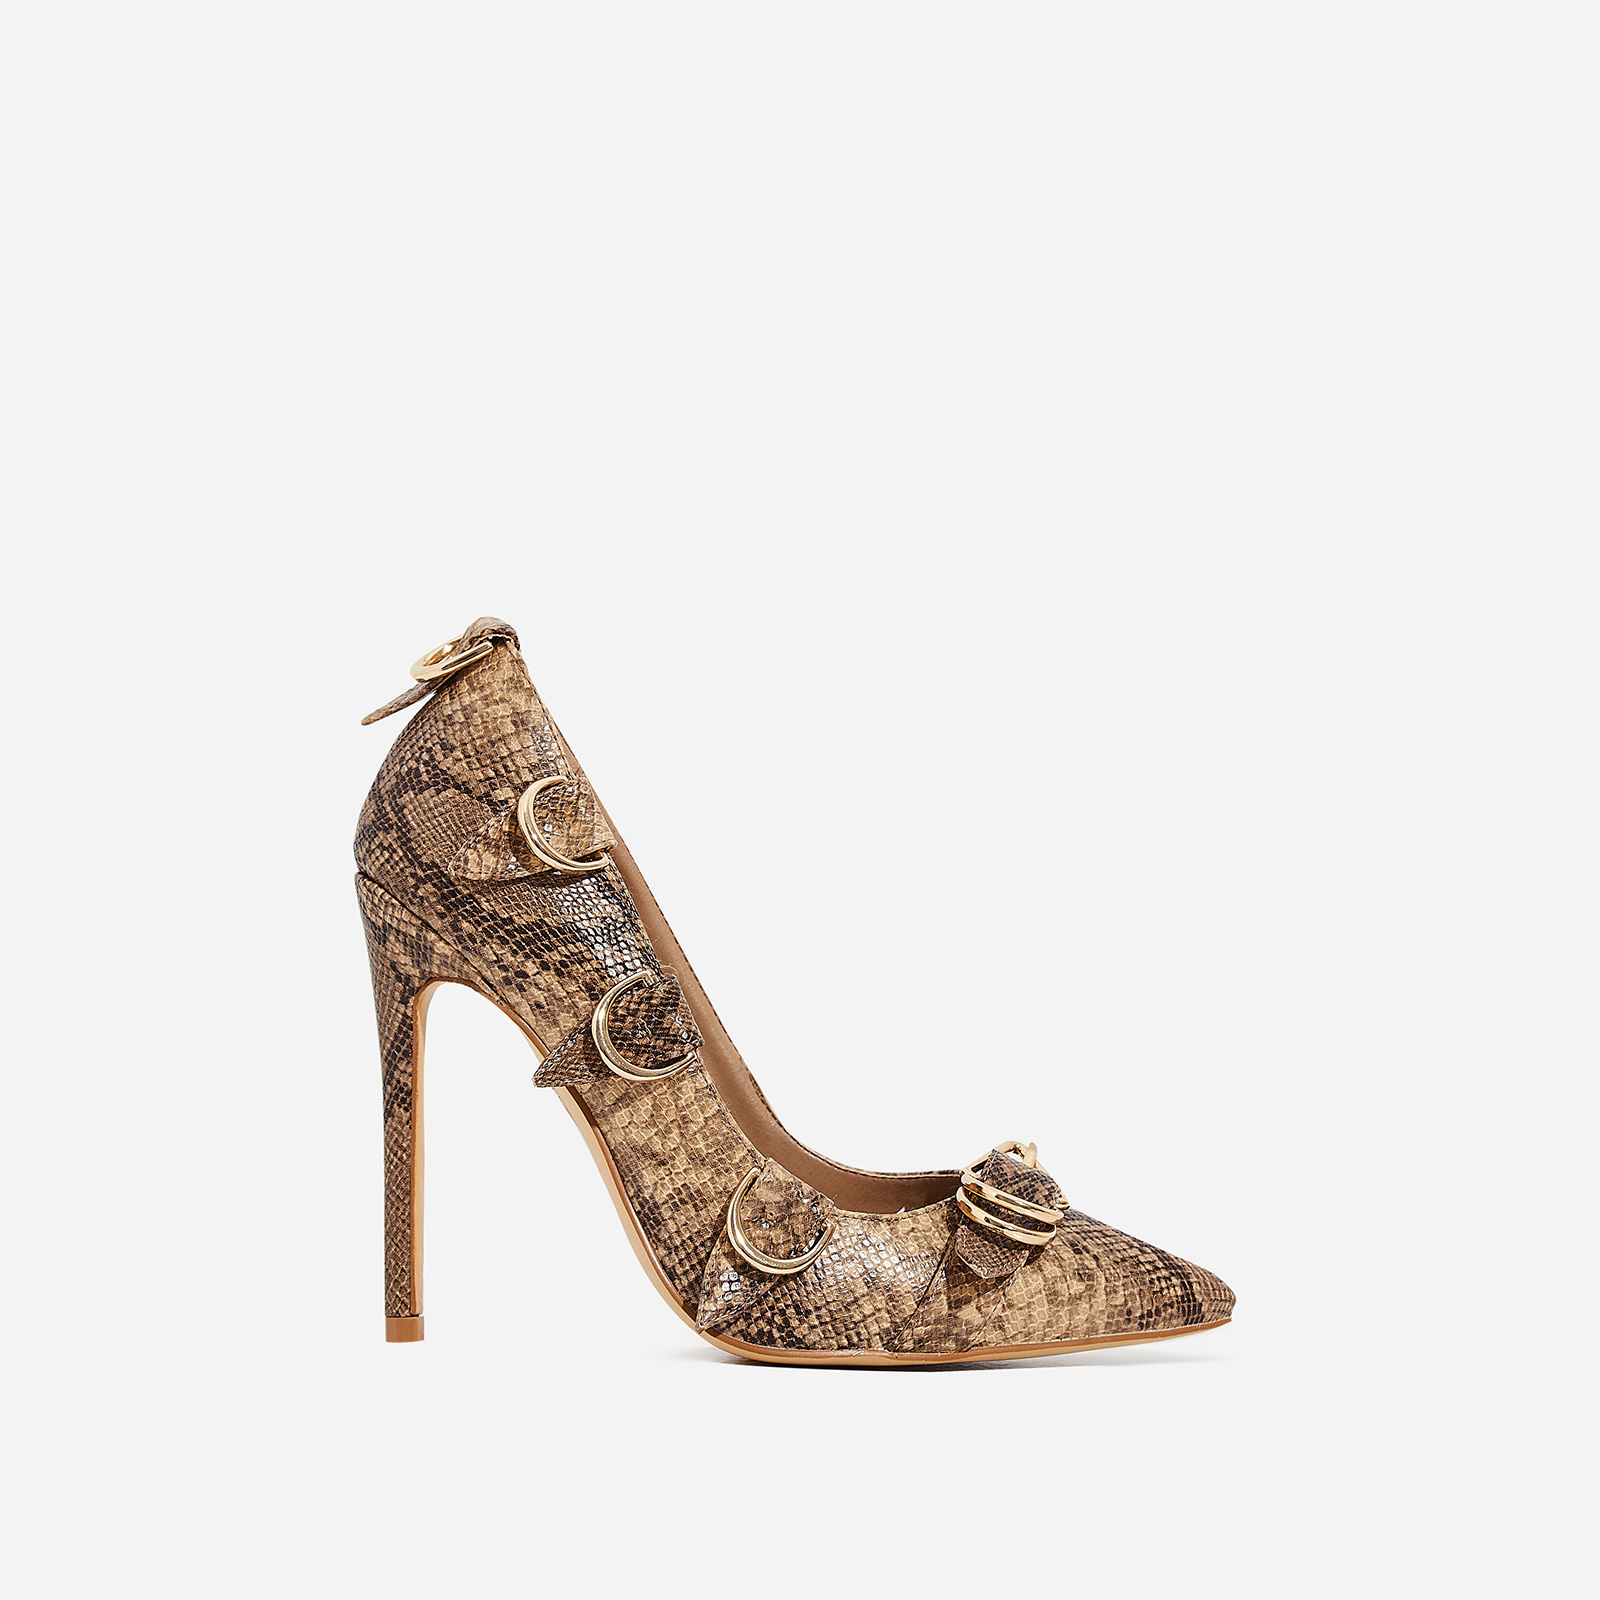 Aleko Buckle Detail Court Heel In Nude Snake Print Faux Leather